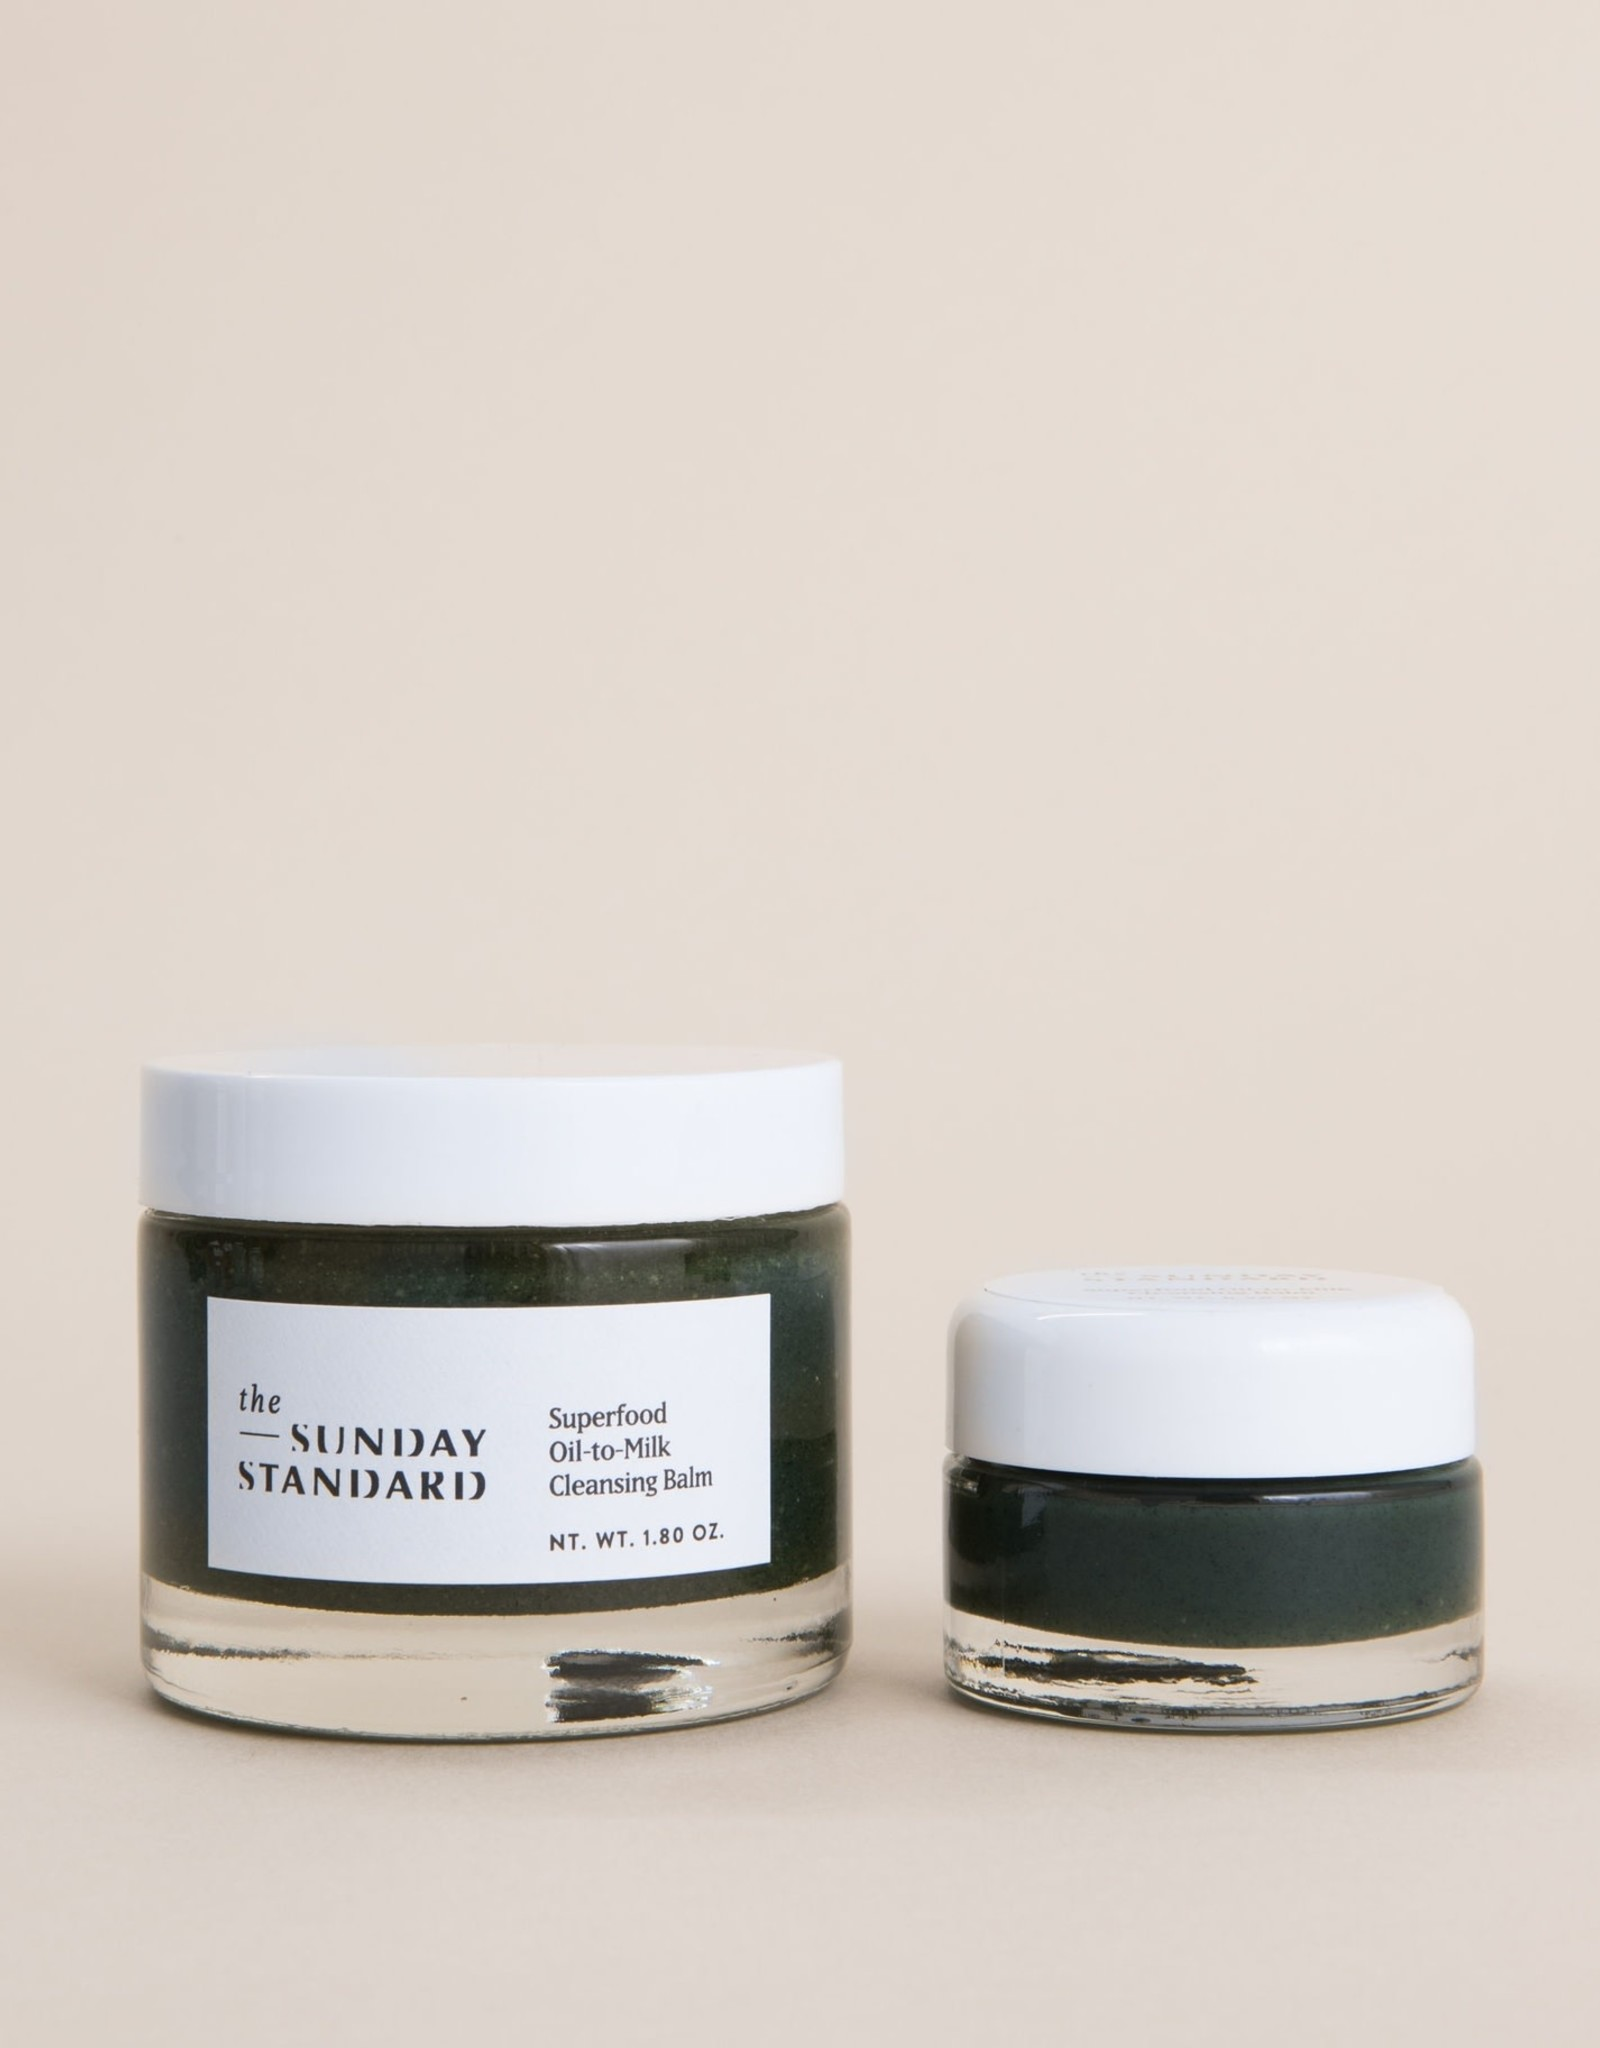 The Sunday Standard Superfood Oil to Milk Cleanser